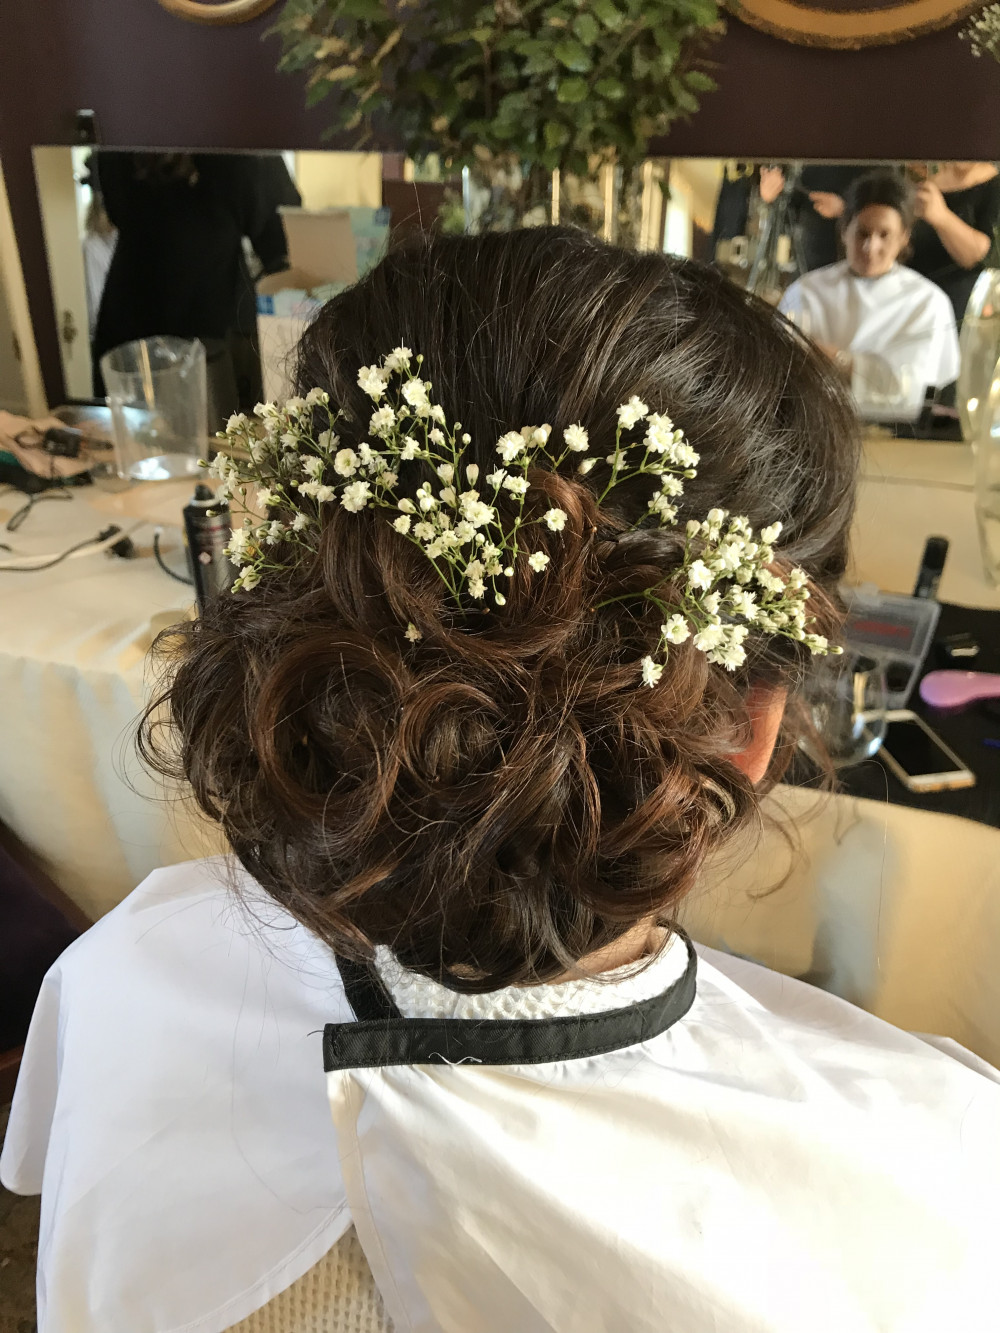 Beautiful Updo for one of the bridesmaids :) Much more of my work is here  https://m.facebook.com/katrinmua/ - Make Me Bridal Artist: Makeup and Hair by Katrina.